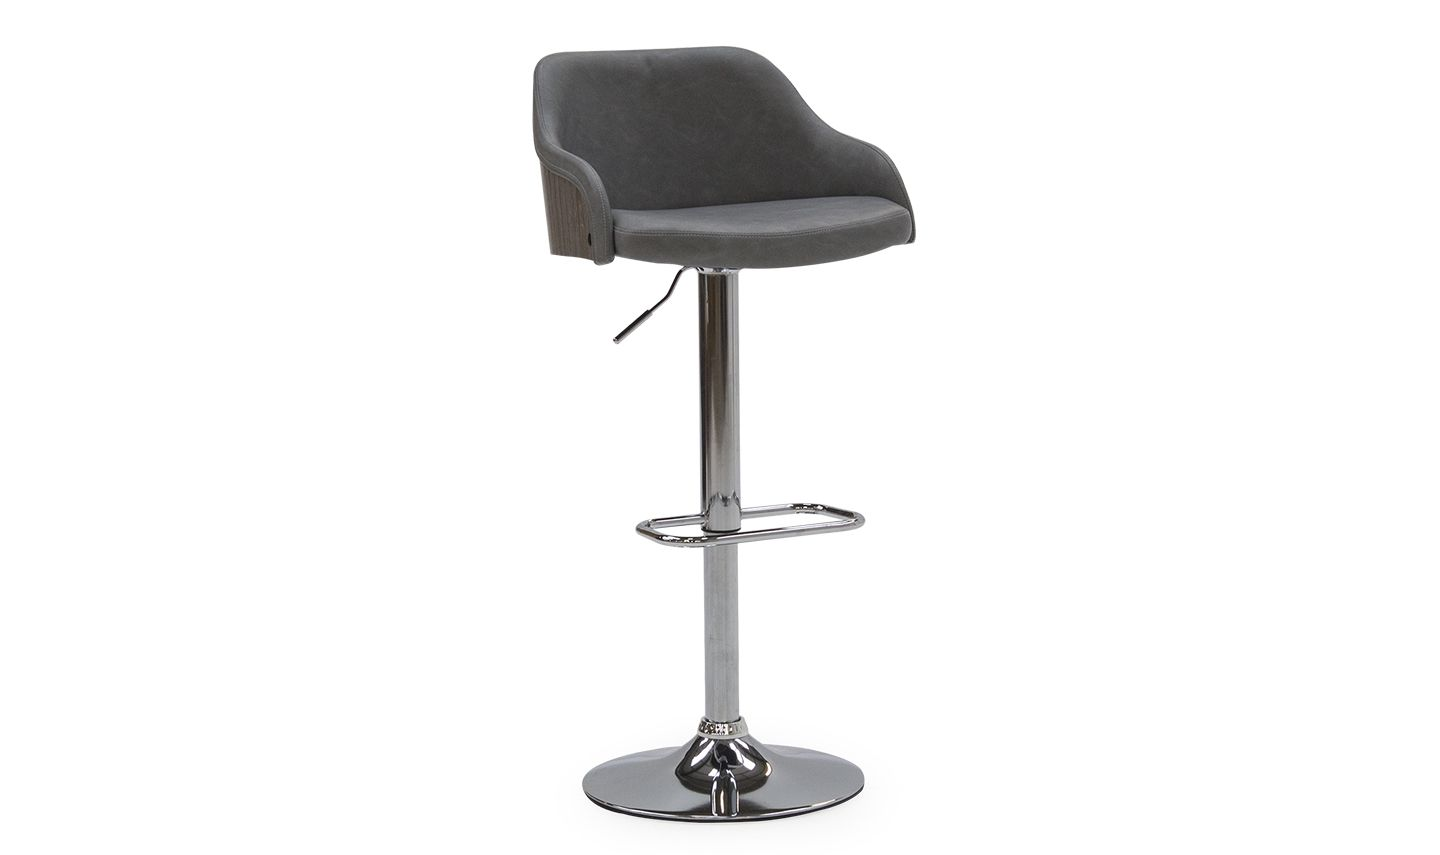 Swell Cassino Grey Faux Leather With Stainless Steel Bar Stool 218Vd465 Short Links Chair Design For Home Short Linksinfo